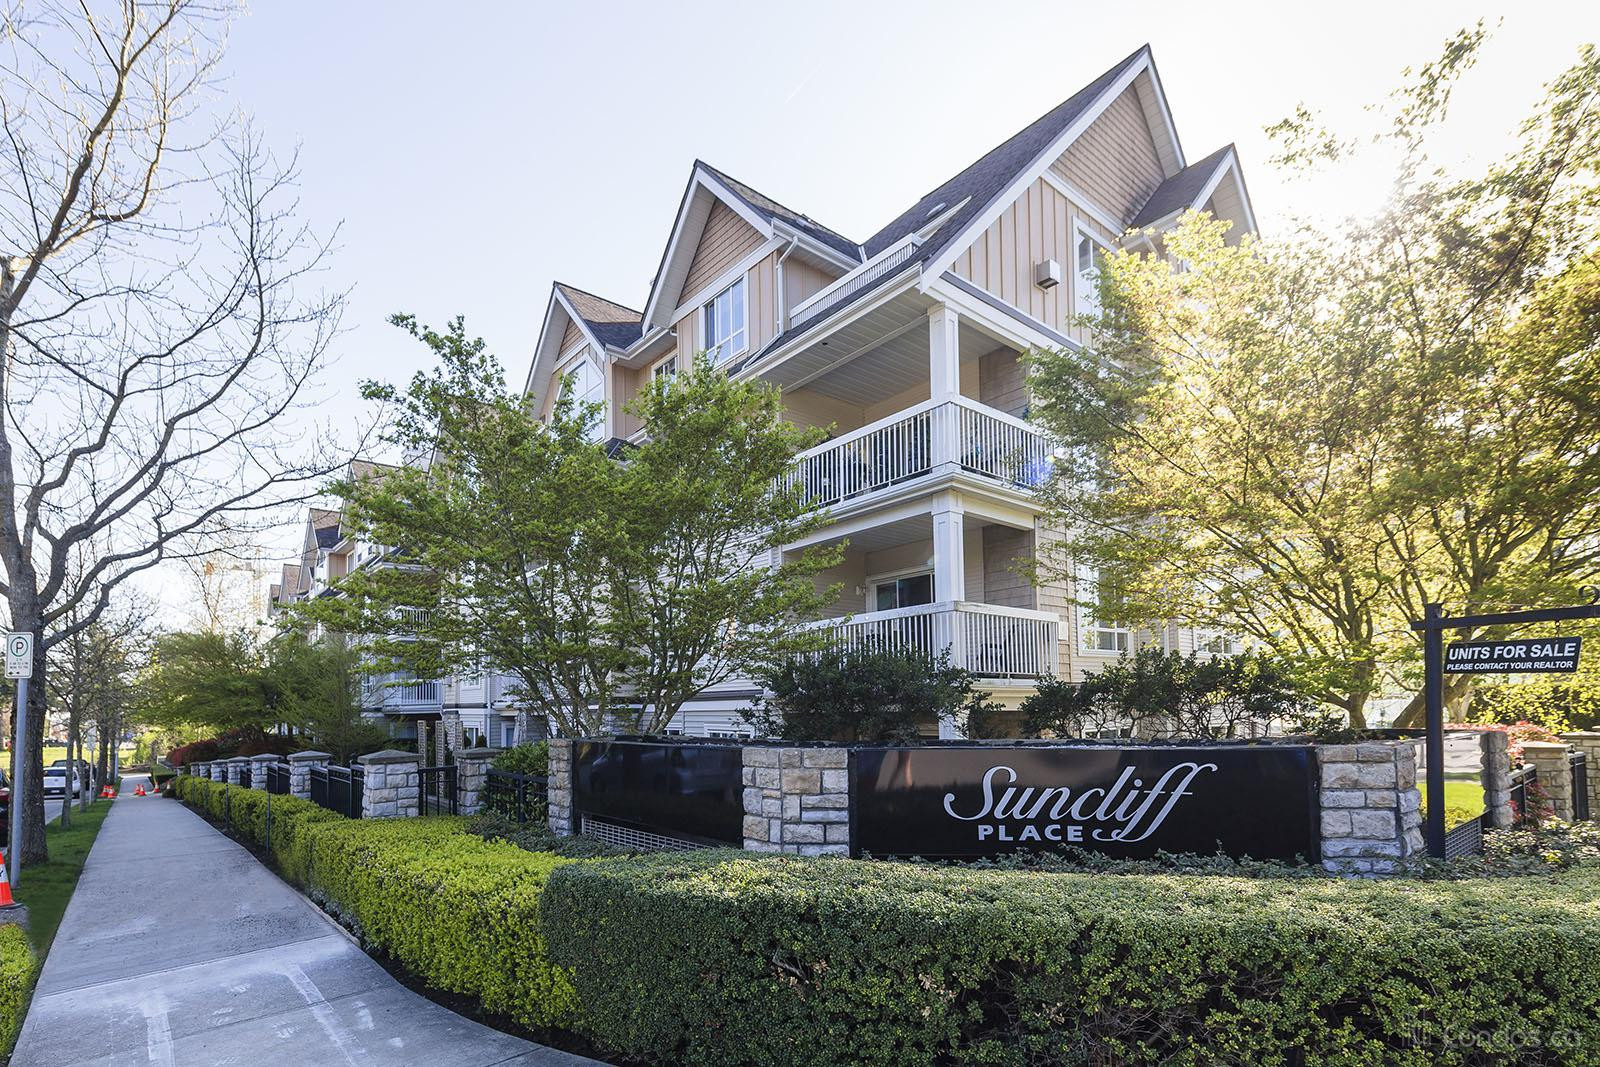 Suncliff Place at 1685 152a St, Surrey 0